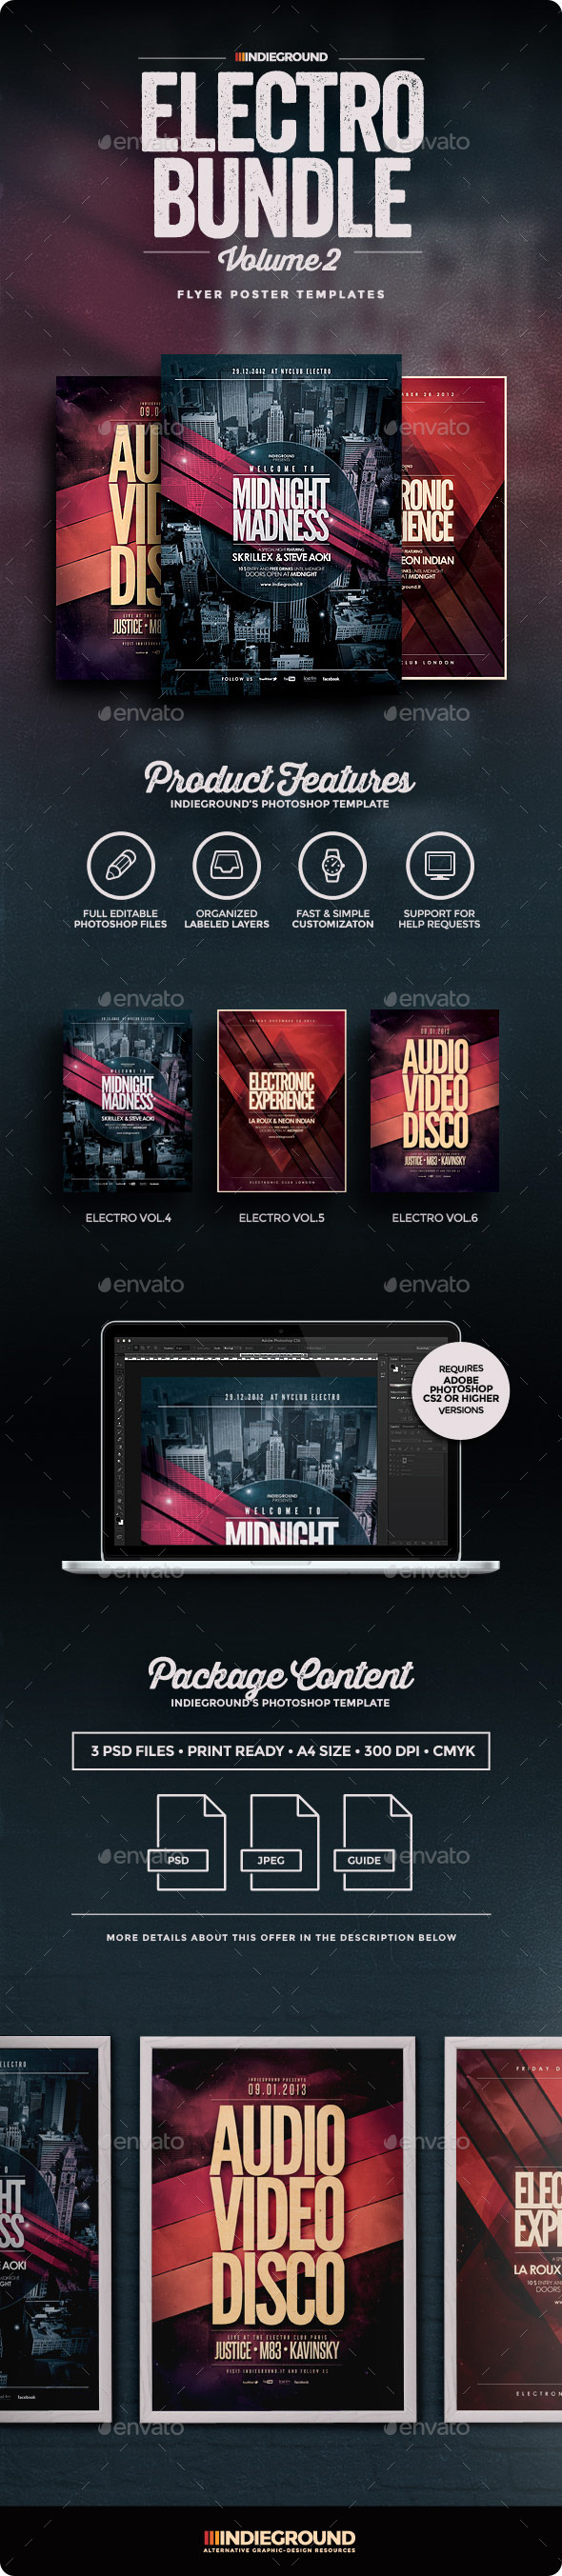 Electro Flyer/Poster Bundle Vol. 4-6 - Events Flyers